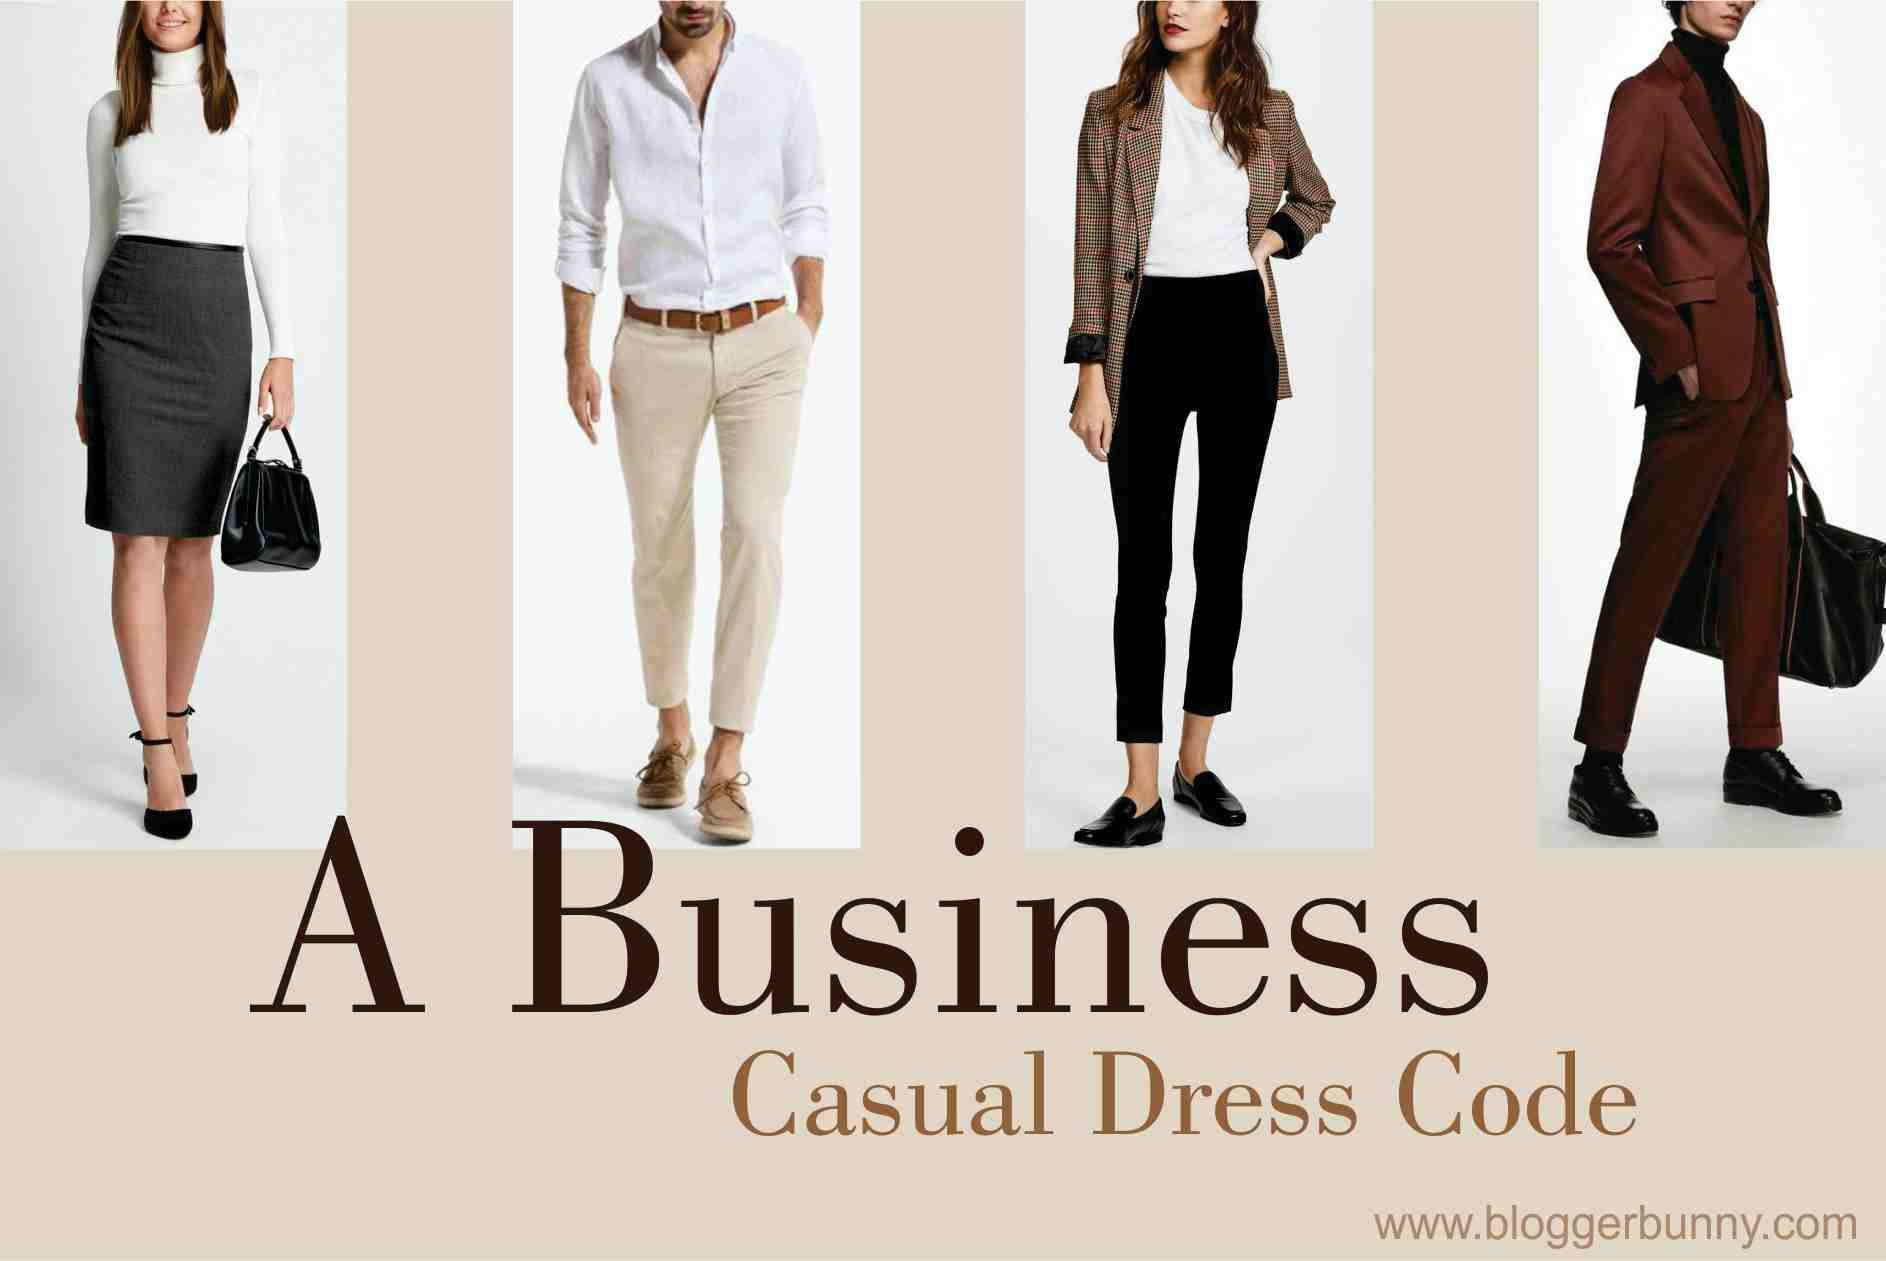 A Business Casual Dress Code